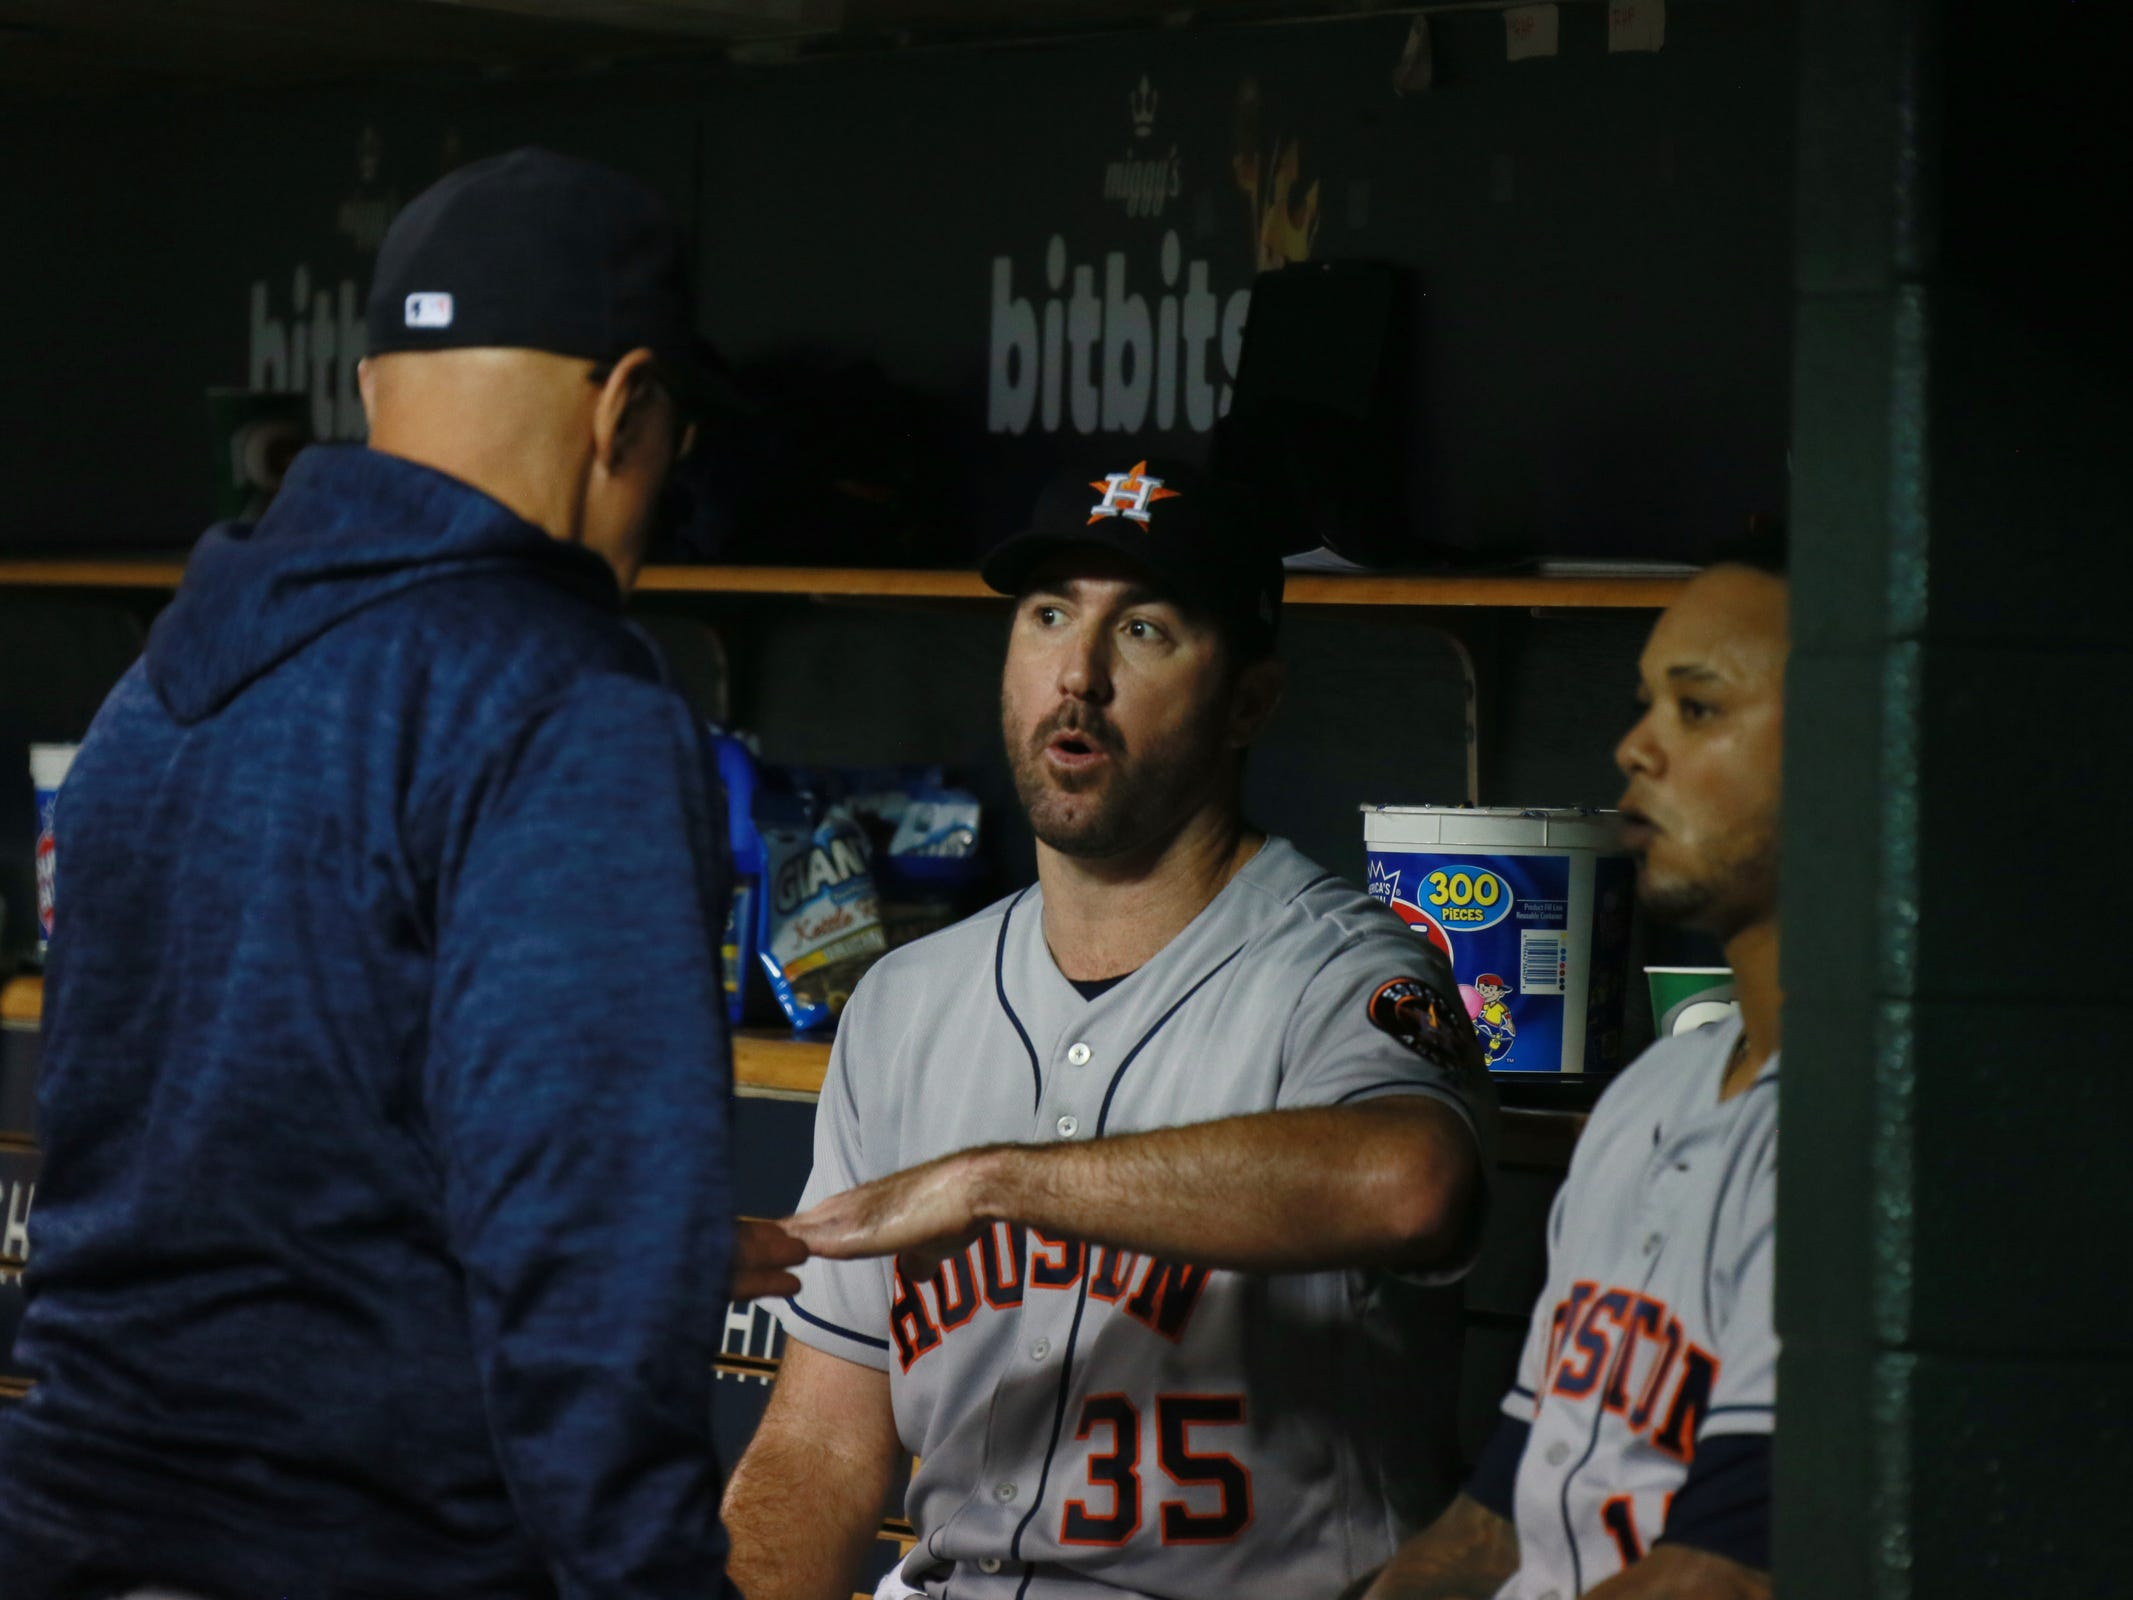 Astros pitcher Justin Verlander ) talks in the dugout after pitching seven innings as the Detroit Tigers take on the Houston Astros on Monday, Sept. 10, 2018, at Comerica Park.